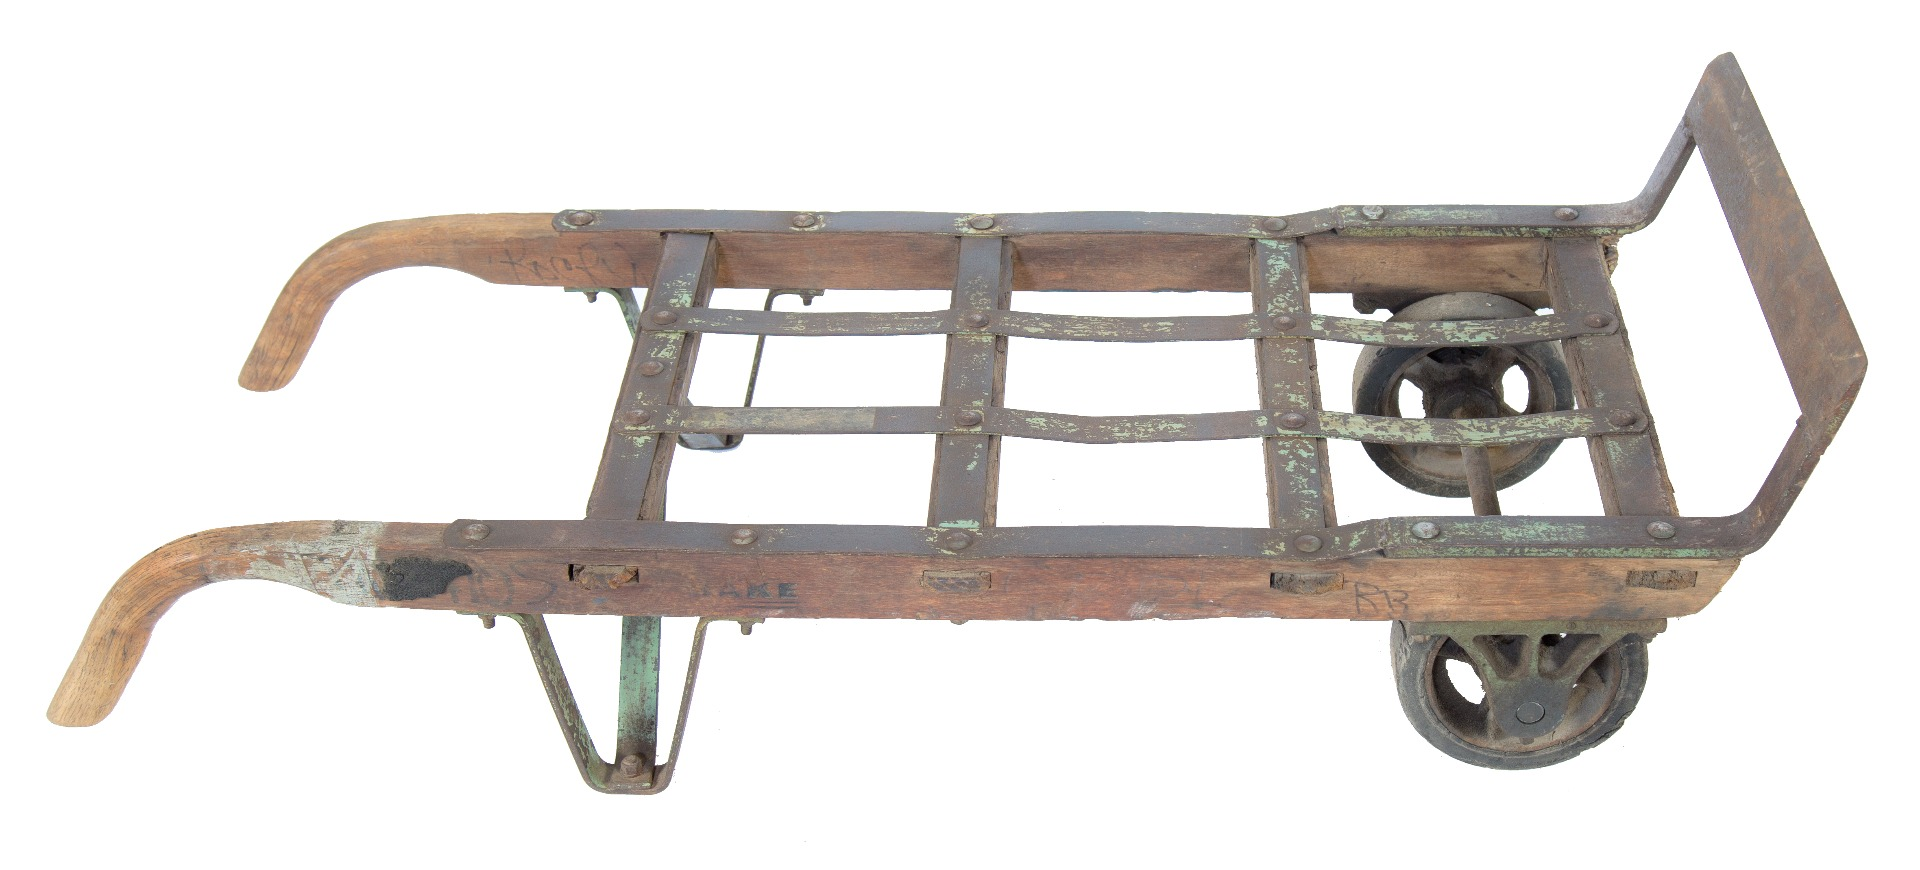 Heavily Reinforced Antique American Industrial Hardwood Factory Machine Shop Furniture Dolly With Casters